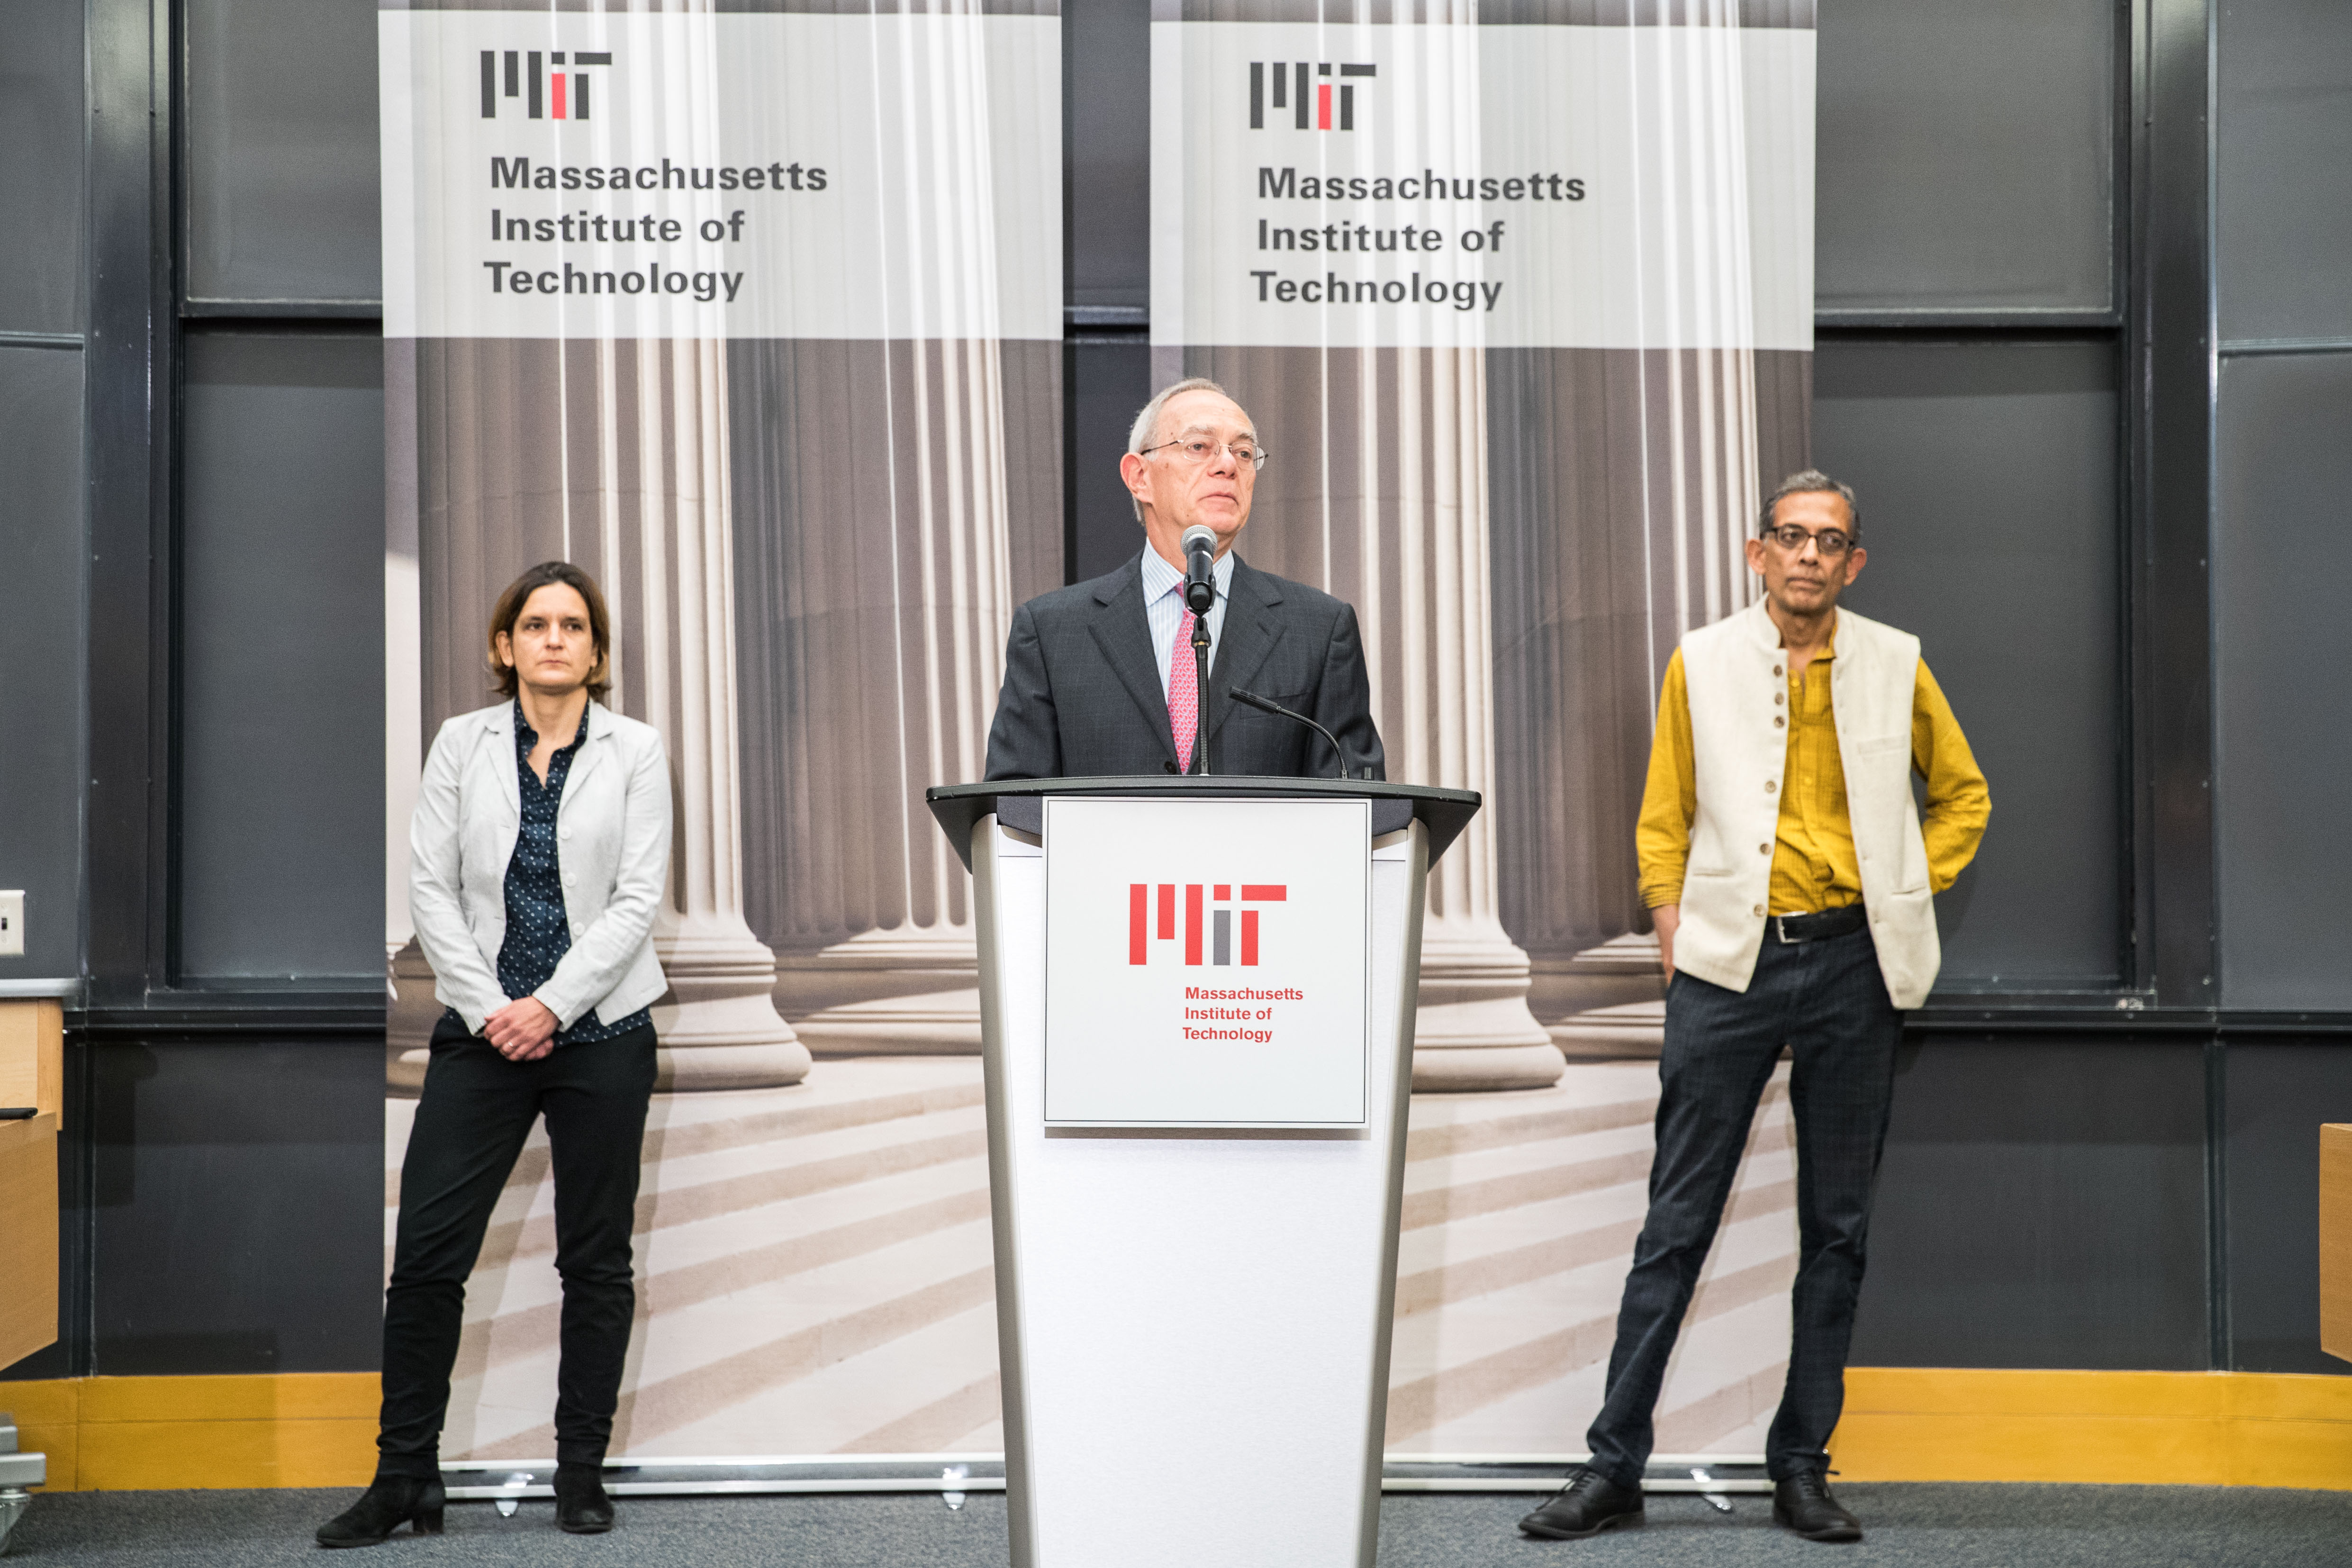 MIT's president stands onstage at a podium introducing the winners of the Nobel Prize in Economics standing to his left and right.